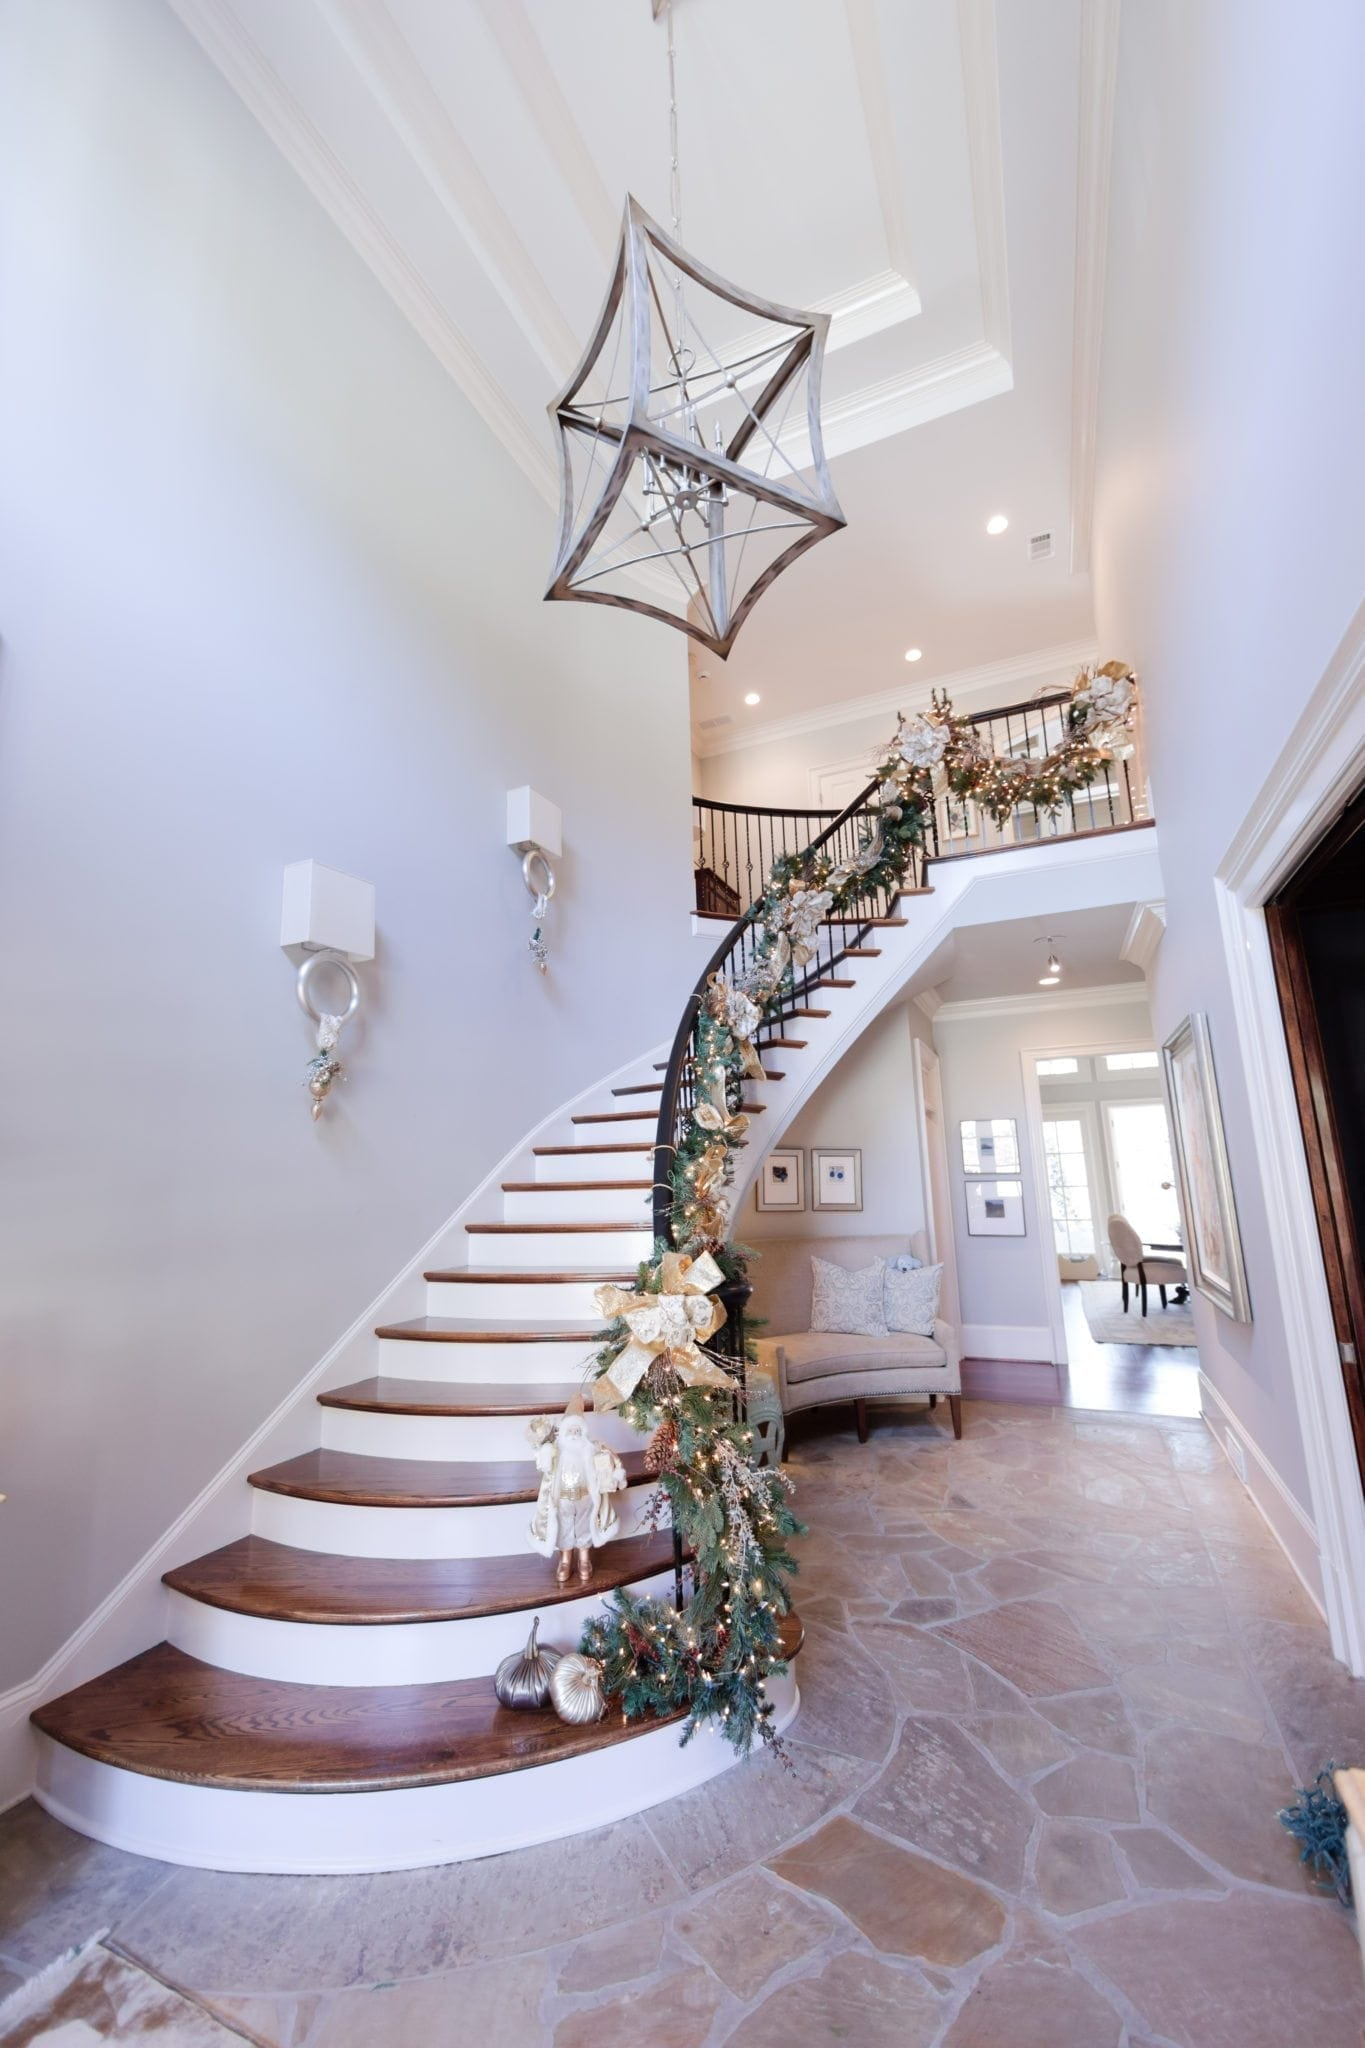 Decorating for Christmas with banister garland. How to hang garland on a staircase.